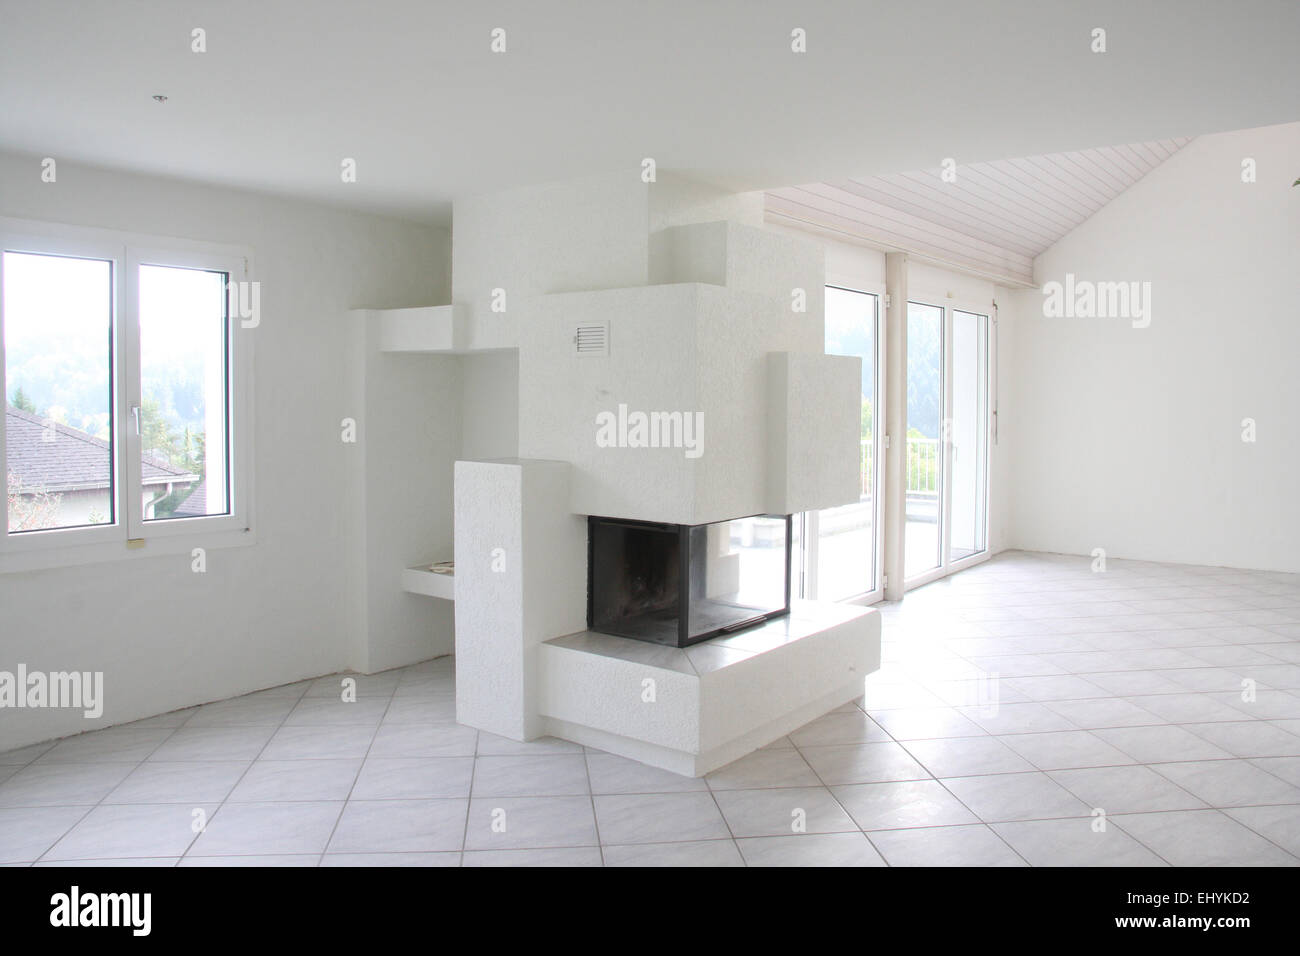 Switzerland, house, home, one family house, luxurious, inside, blank ...